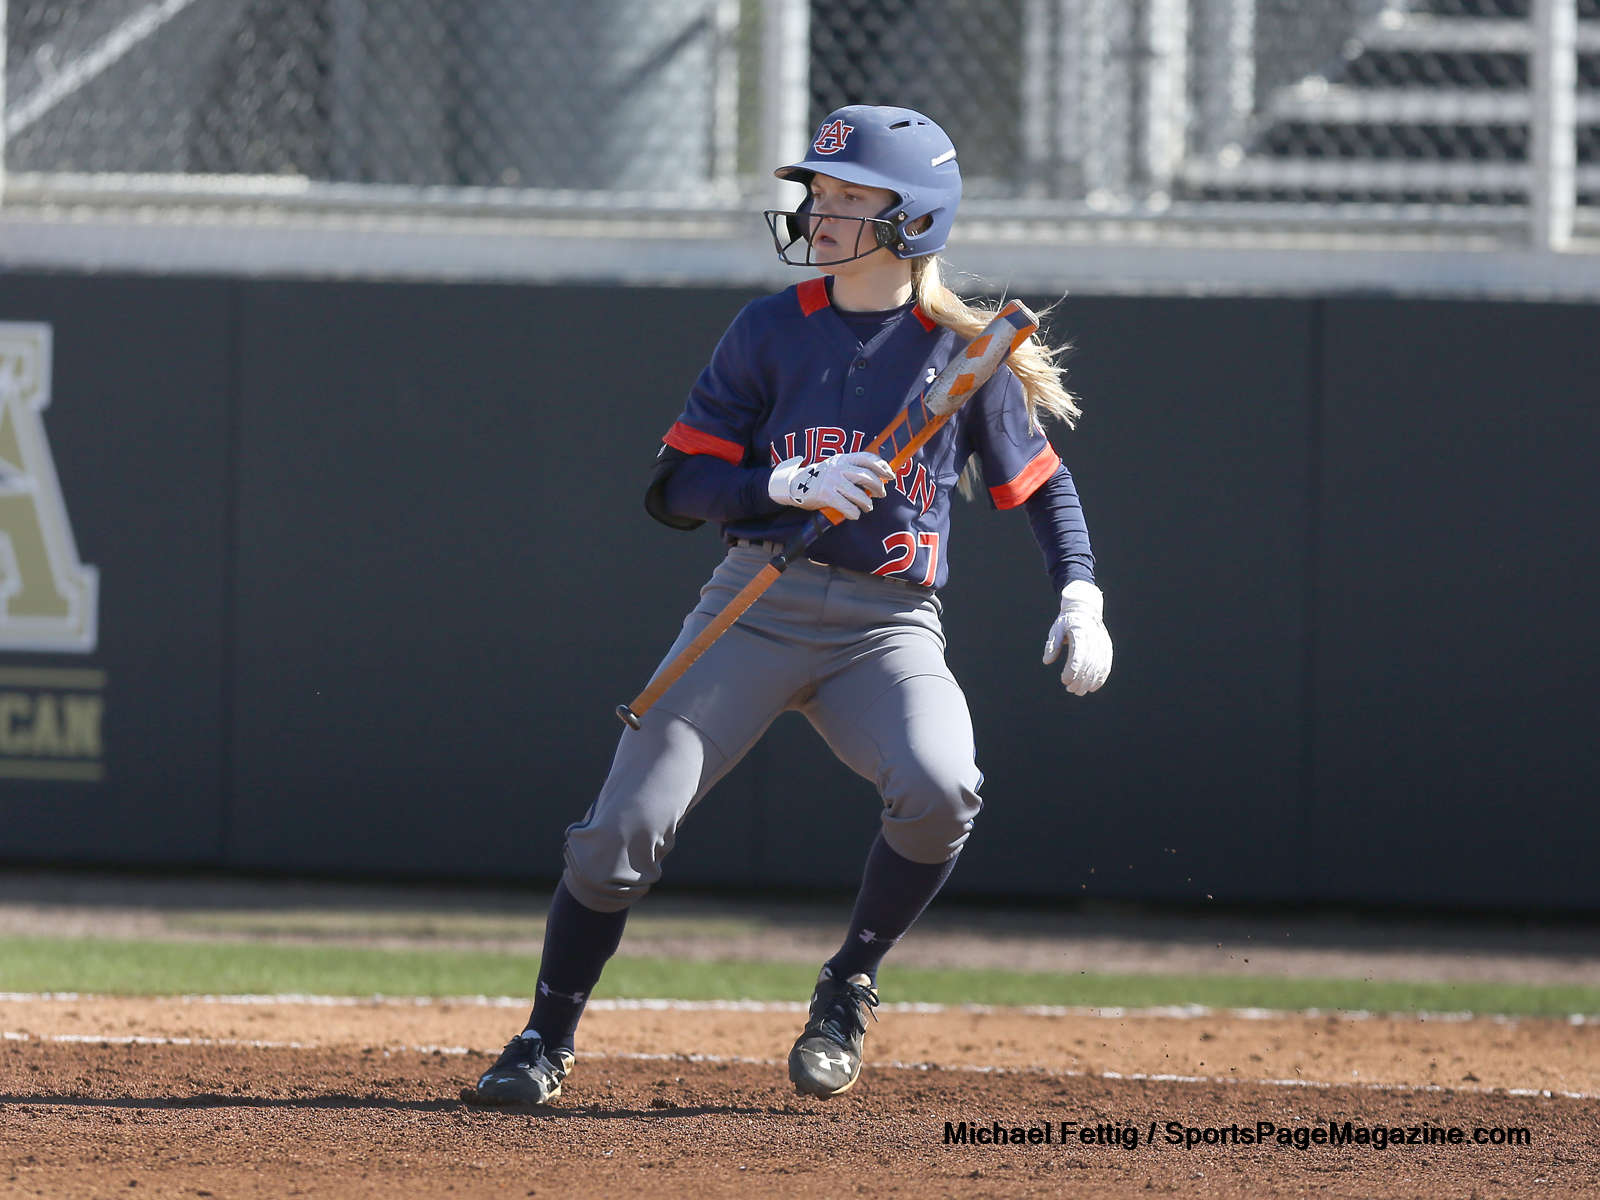 Gallery NCAA Softball UCF 0 Vs Auburn 2 Sports Page